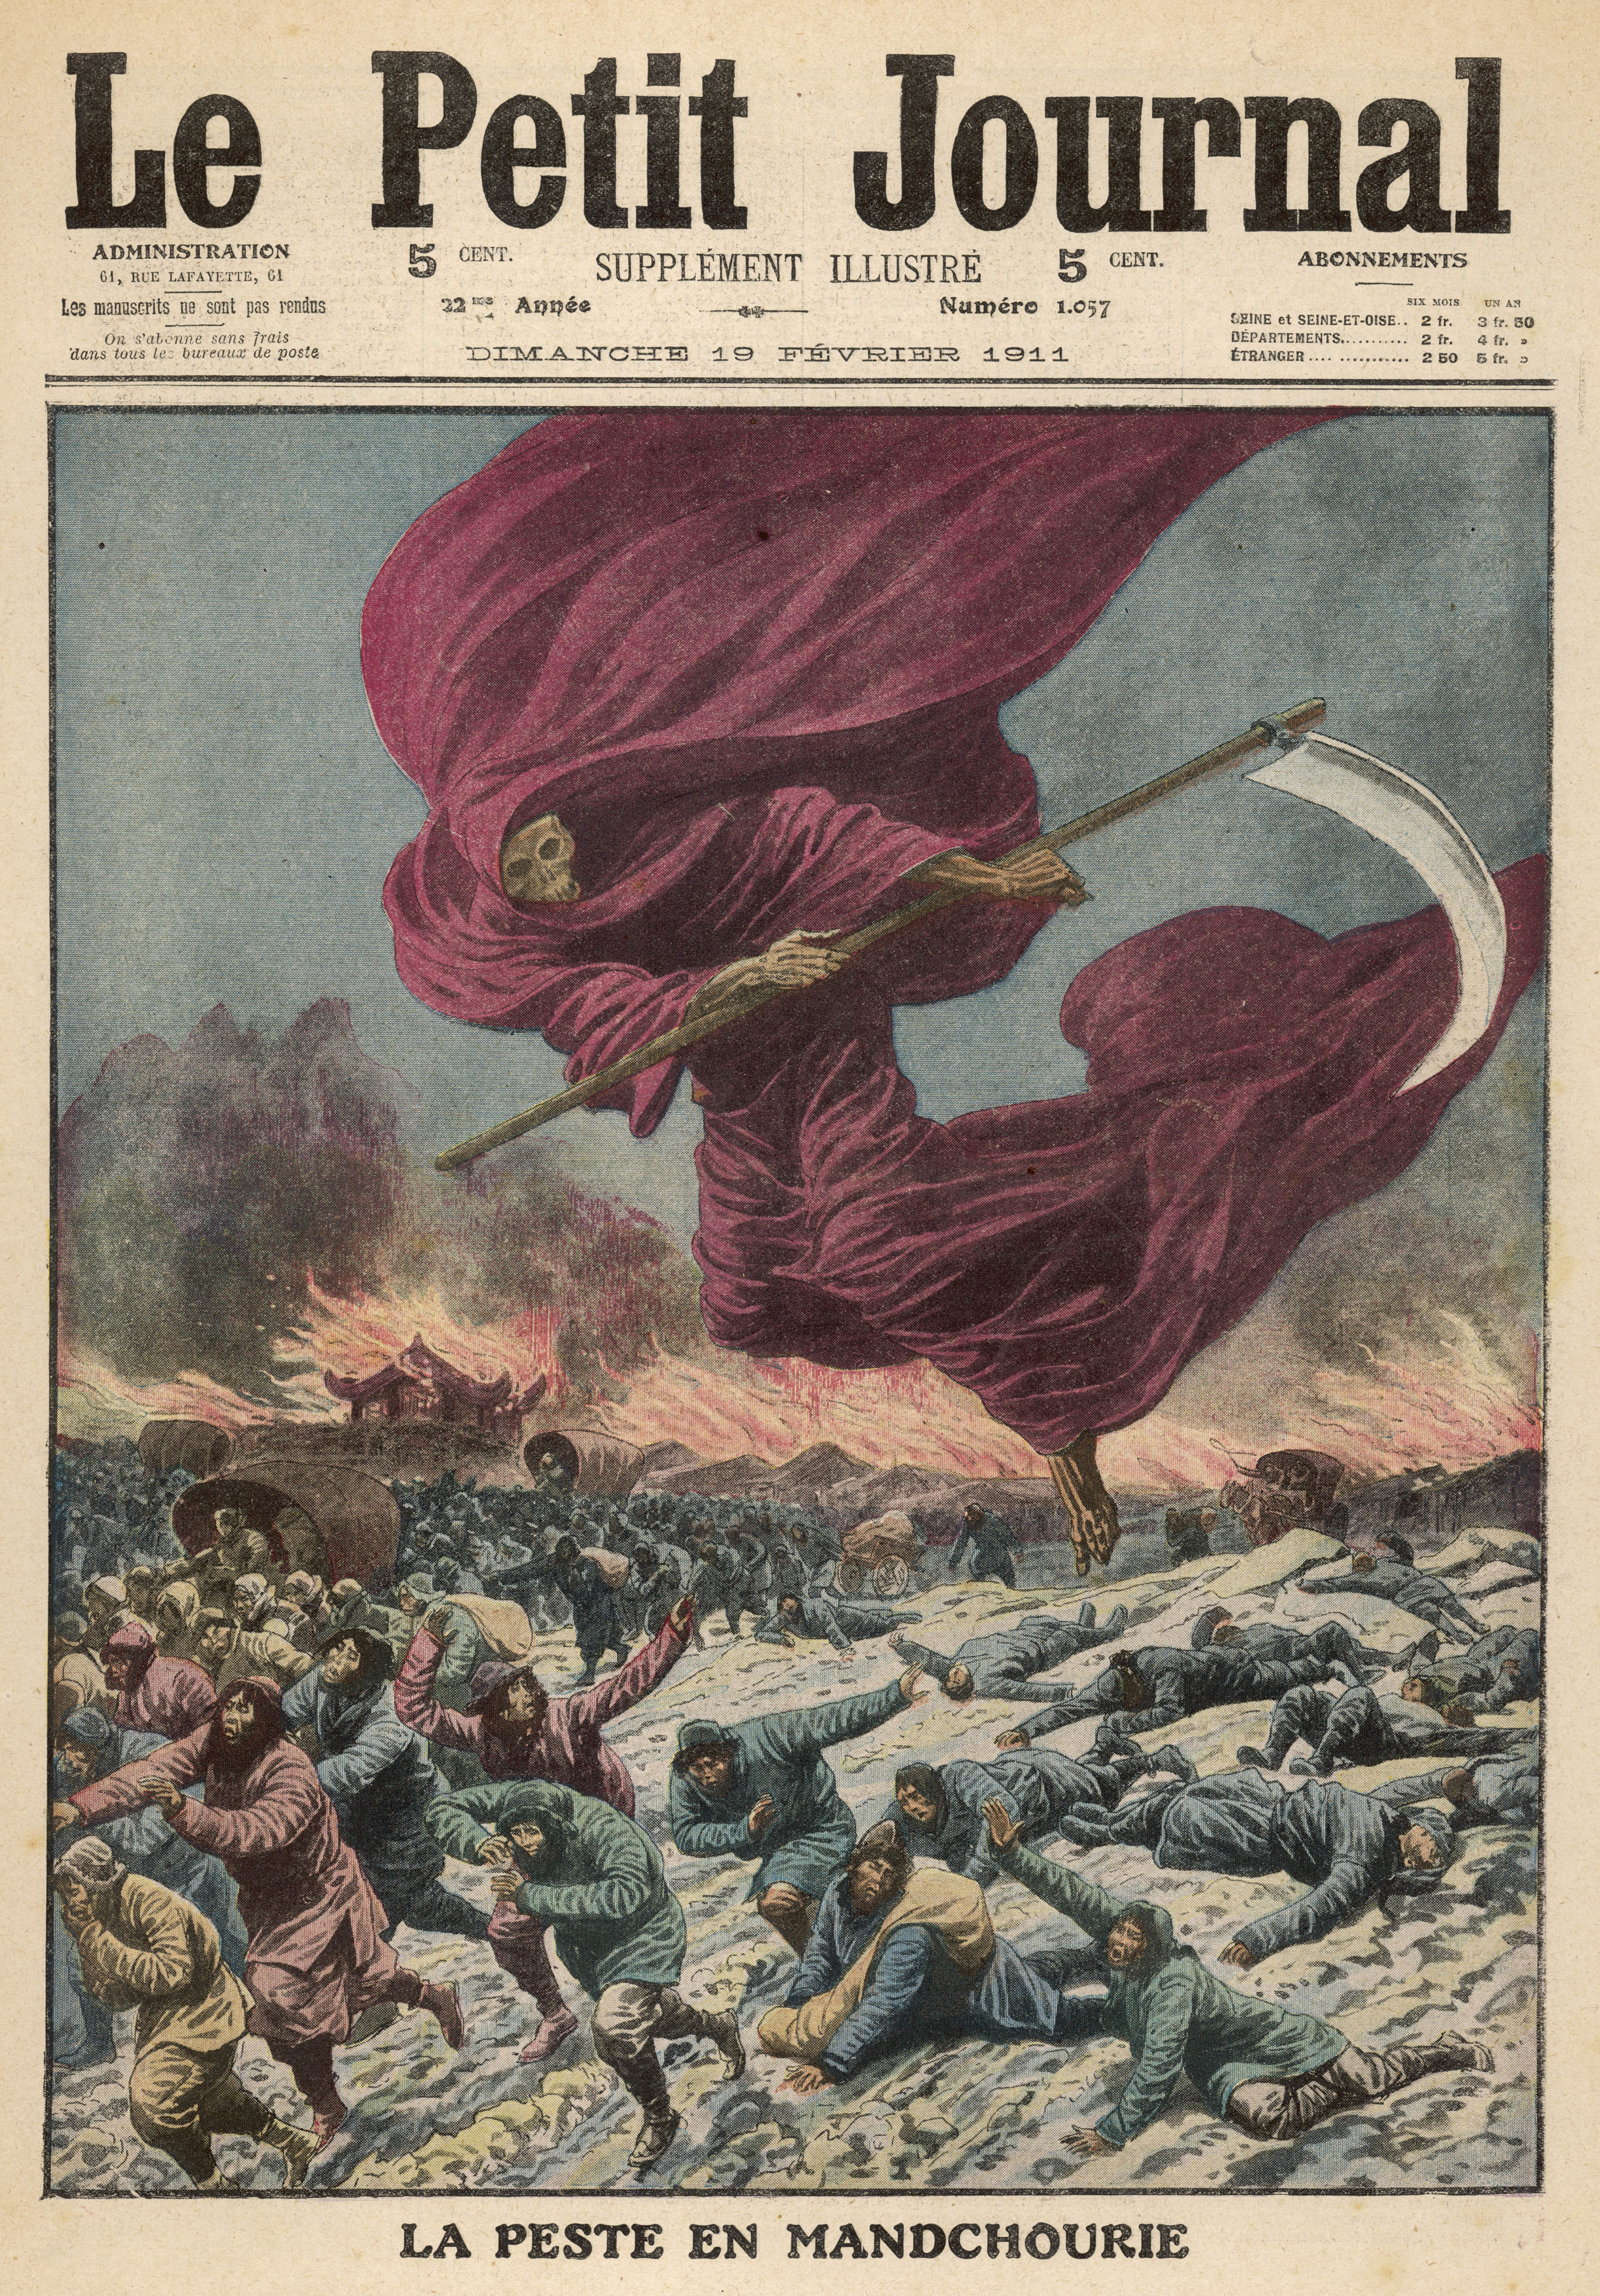 An illustration of The Plague scouring over the  Manchurians, with his scythe,  dressed in a deep red robe from 1911, published in Le Petit Journal